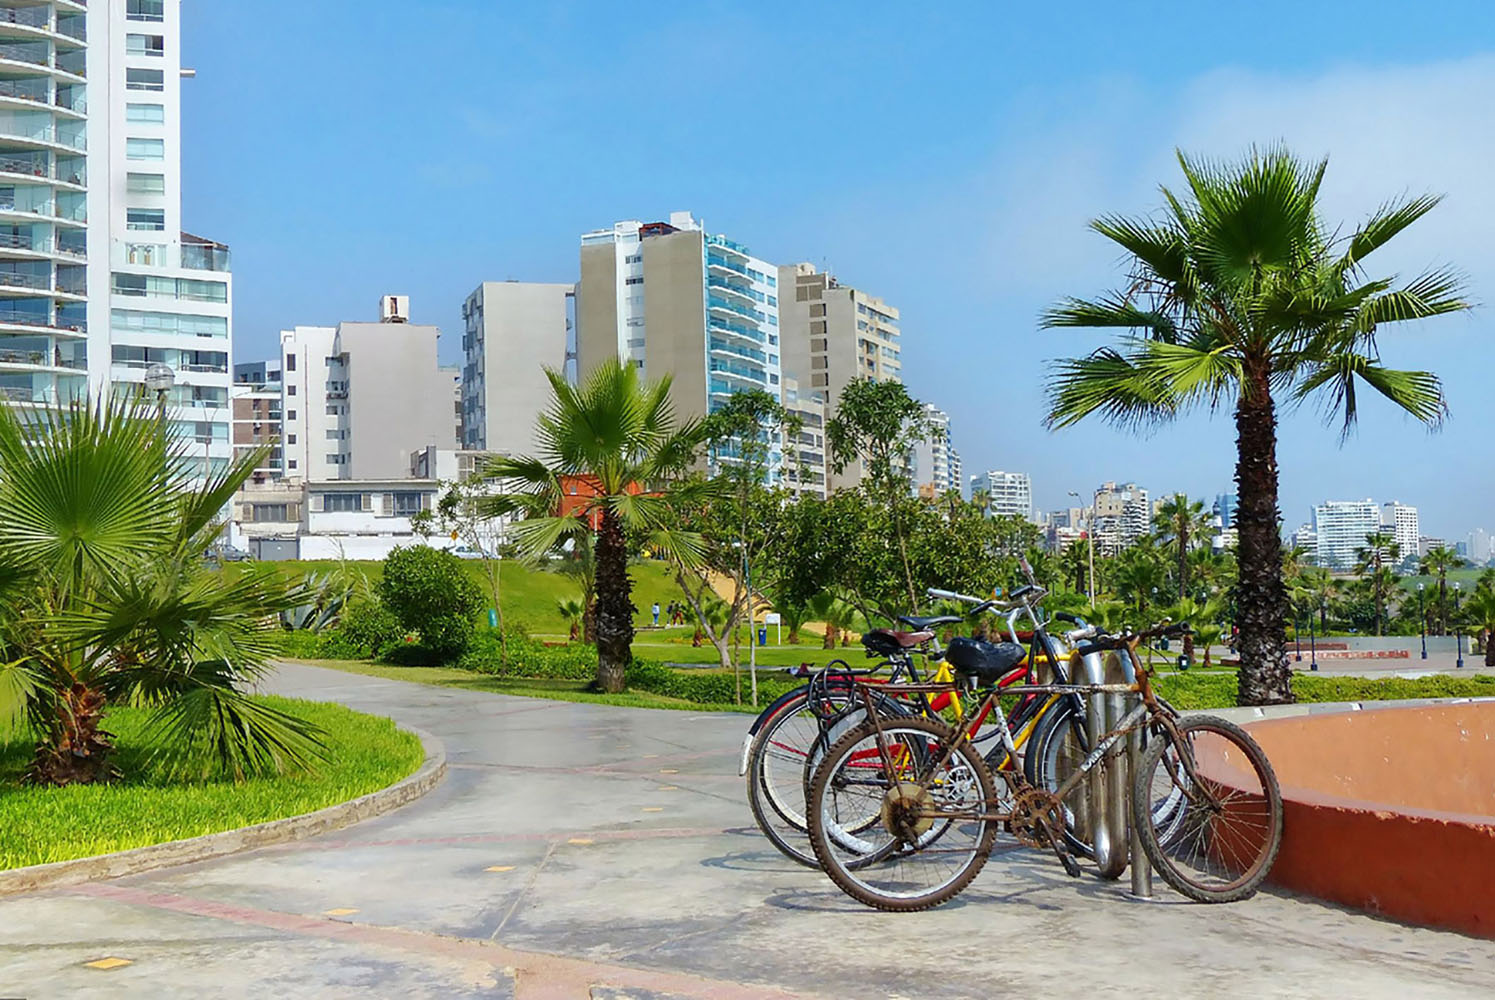 Bicycles for rent in the Miraflores park in Lima, Peru